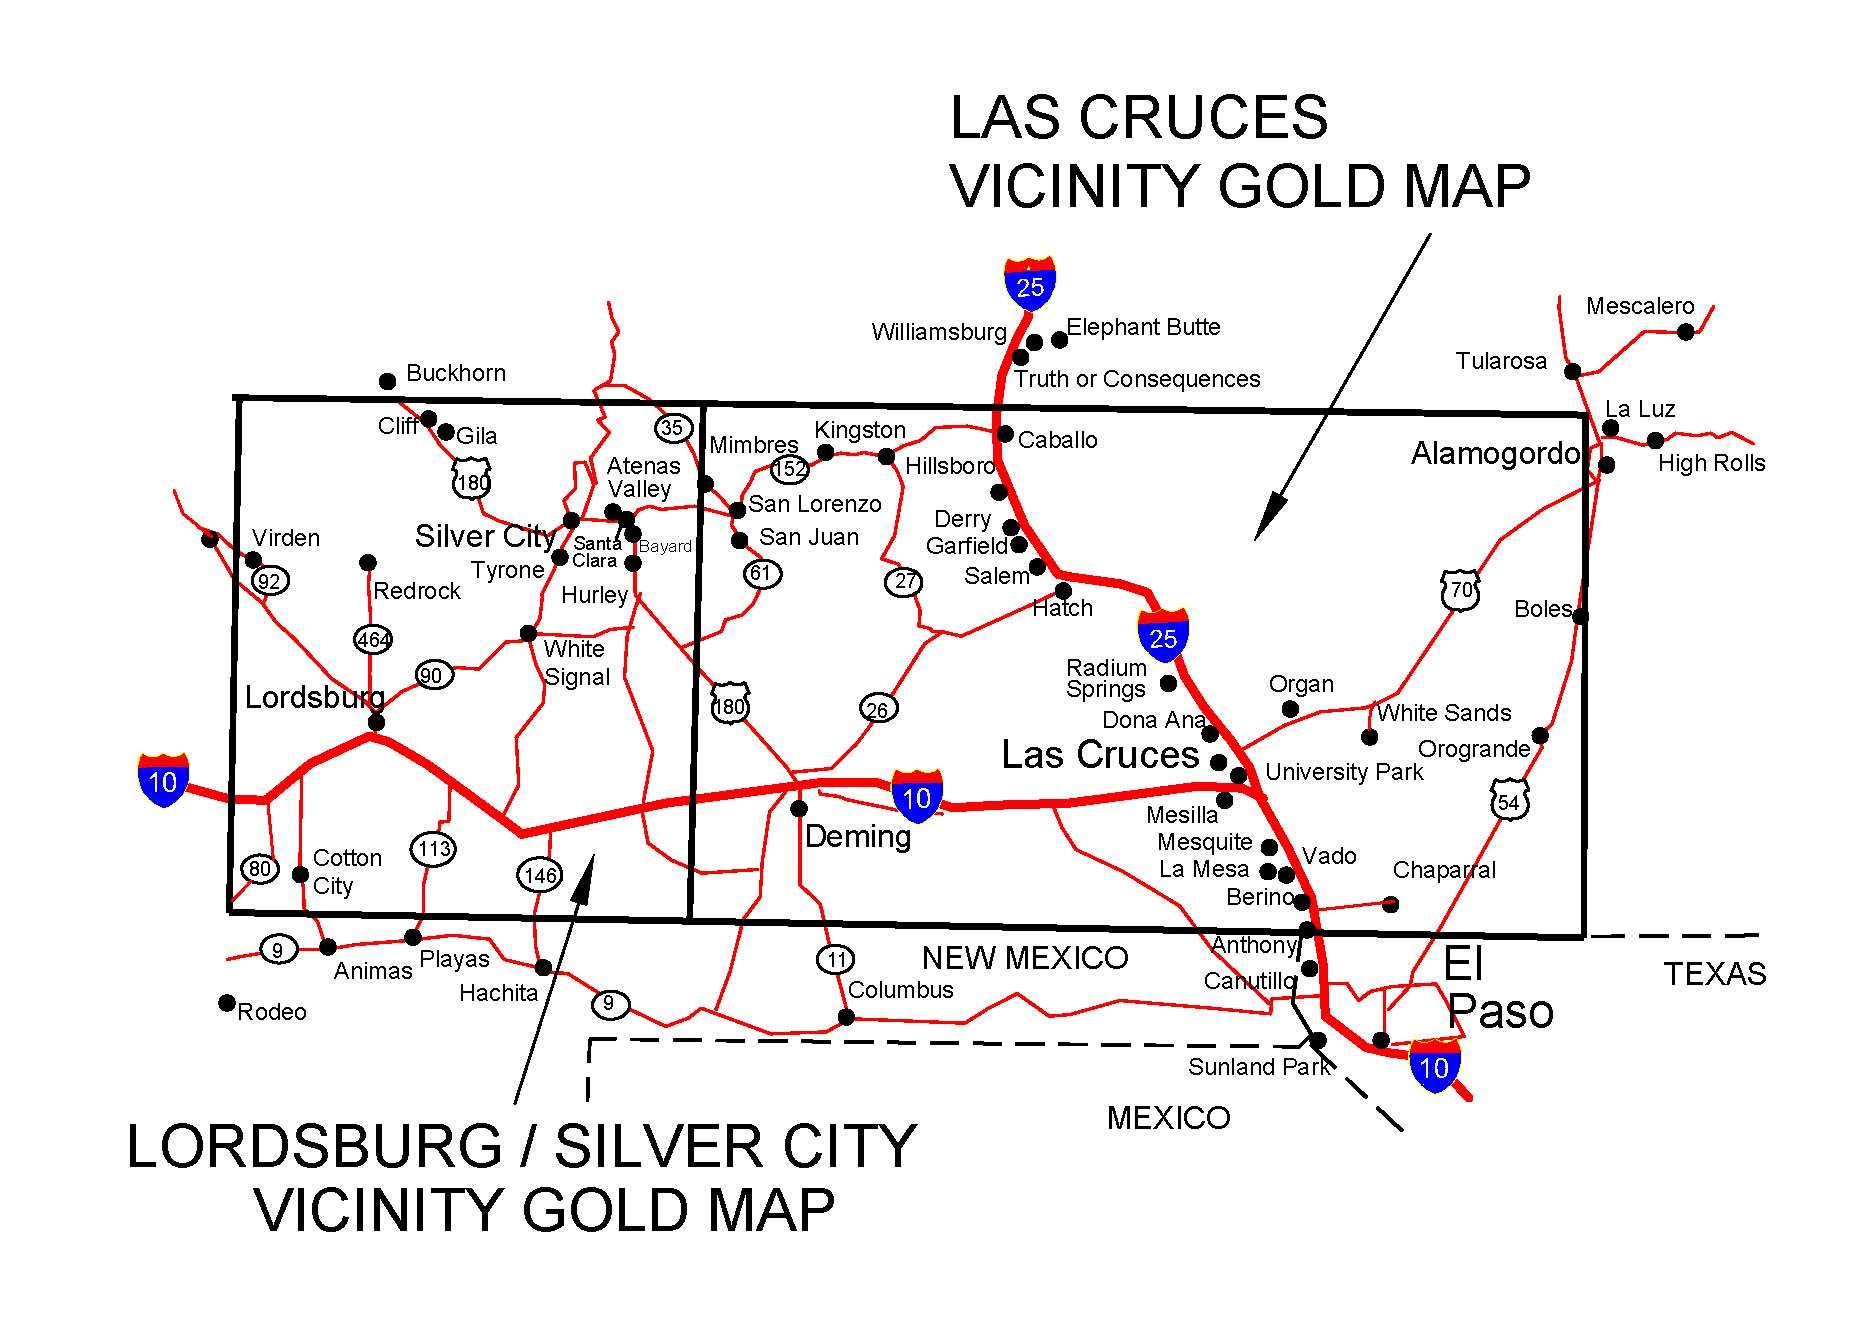 NEW MEXICO GOLD MAPS, GOLD PLACERS AND GOLD PANNING AND ... on new mexico cities and towns map, cliff dwellings colorado map, taos new mexico map, silver city nm, santa fe new mexico map, cimarron valley new mexico map, clovis new mexico map, district of columbia on us map, truth or consequences new mexico map, silver city historic district, espanola new mexico map, sky city new mexico map, jackson new mexico map, new mexico elk hunting unit map, silver city things to do, sumner new mexico map, carlsbad new mexico map, mexico before mexican-american war map, las cruces new mexico map, albuquerque new mexico city map,